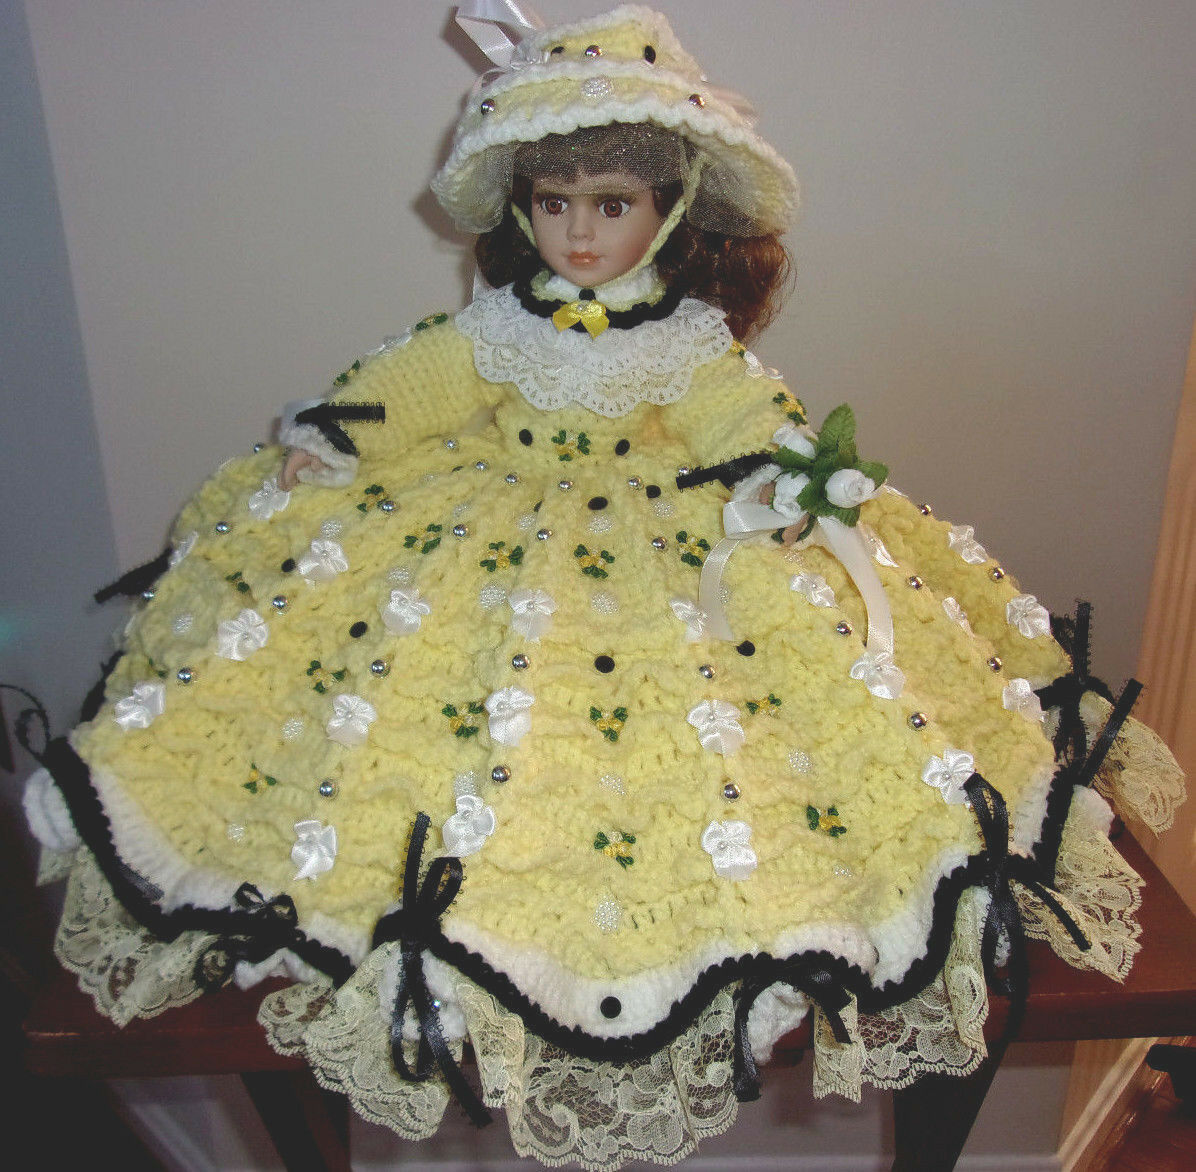 HANDMADE CROCHET BED PILLOW ATTACHED PAJAMA DOLL,LIMITED BAG PORCELAIN DOLL,LIMITED PAJAMA 4a1ea2